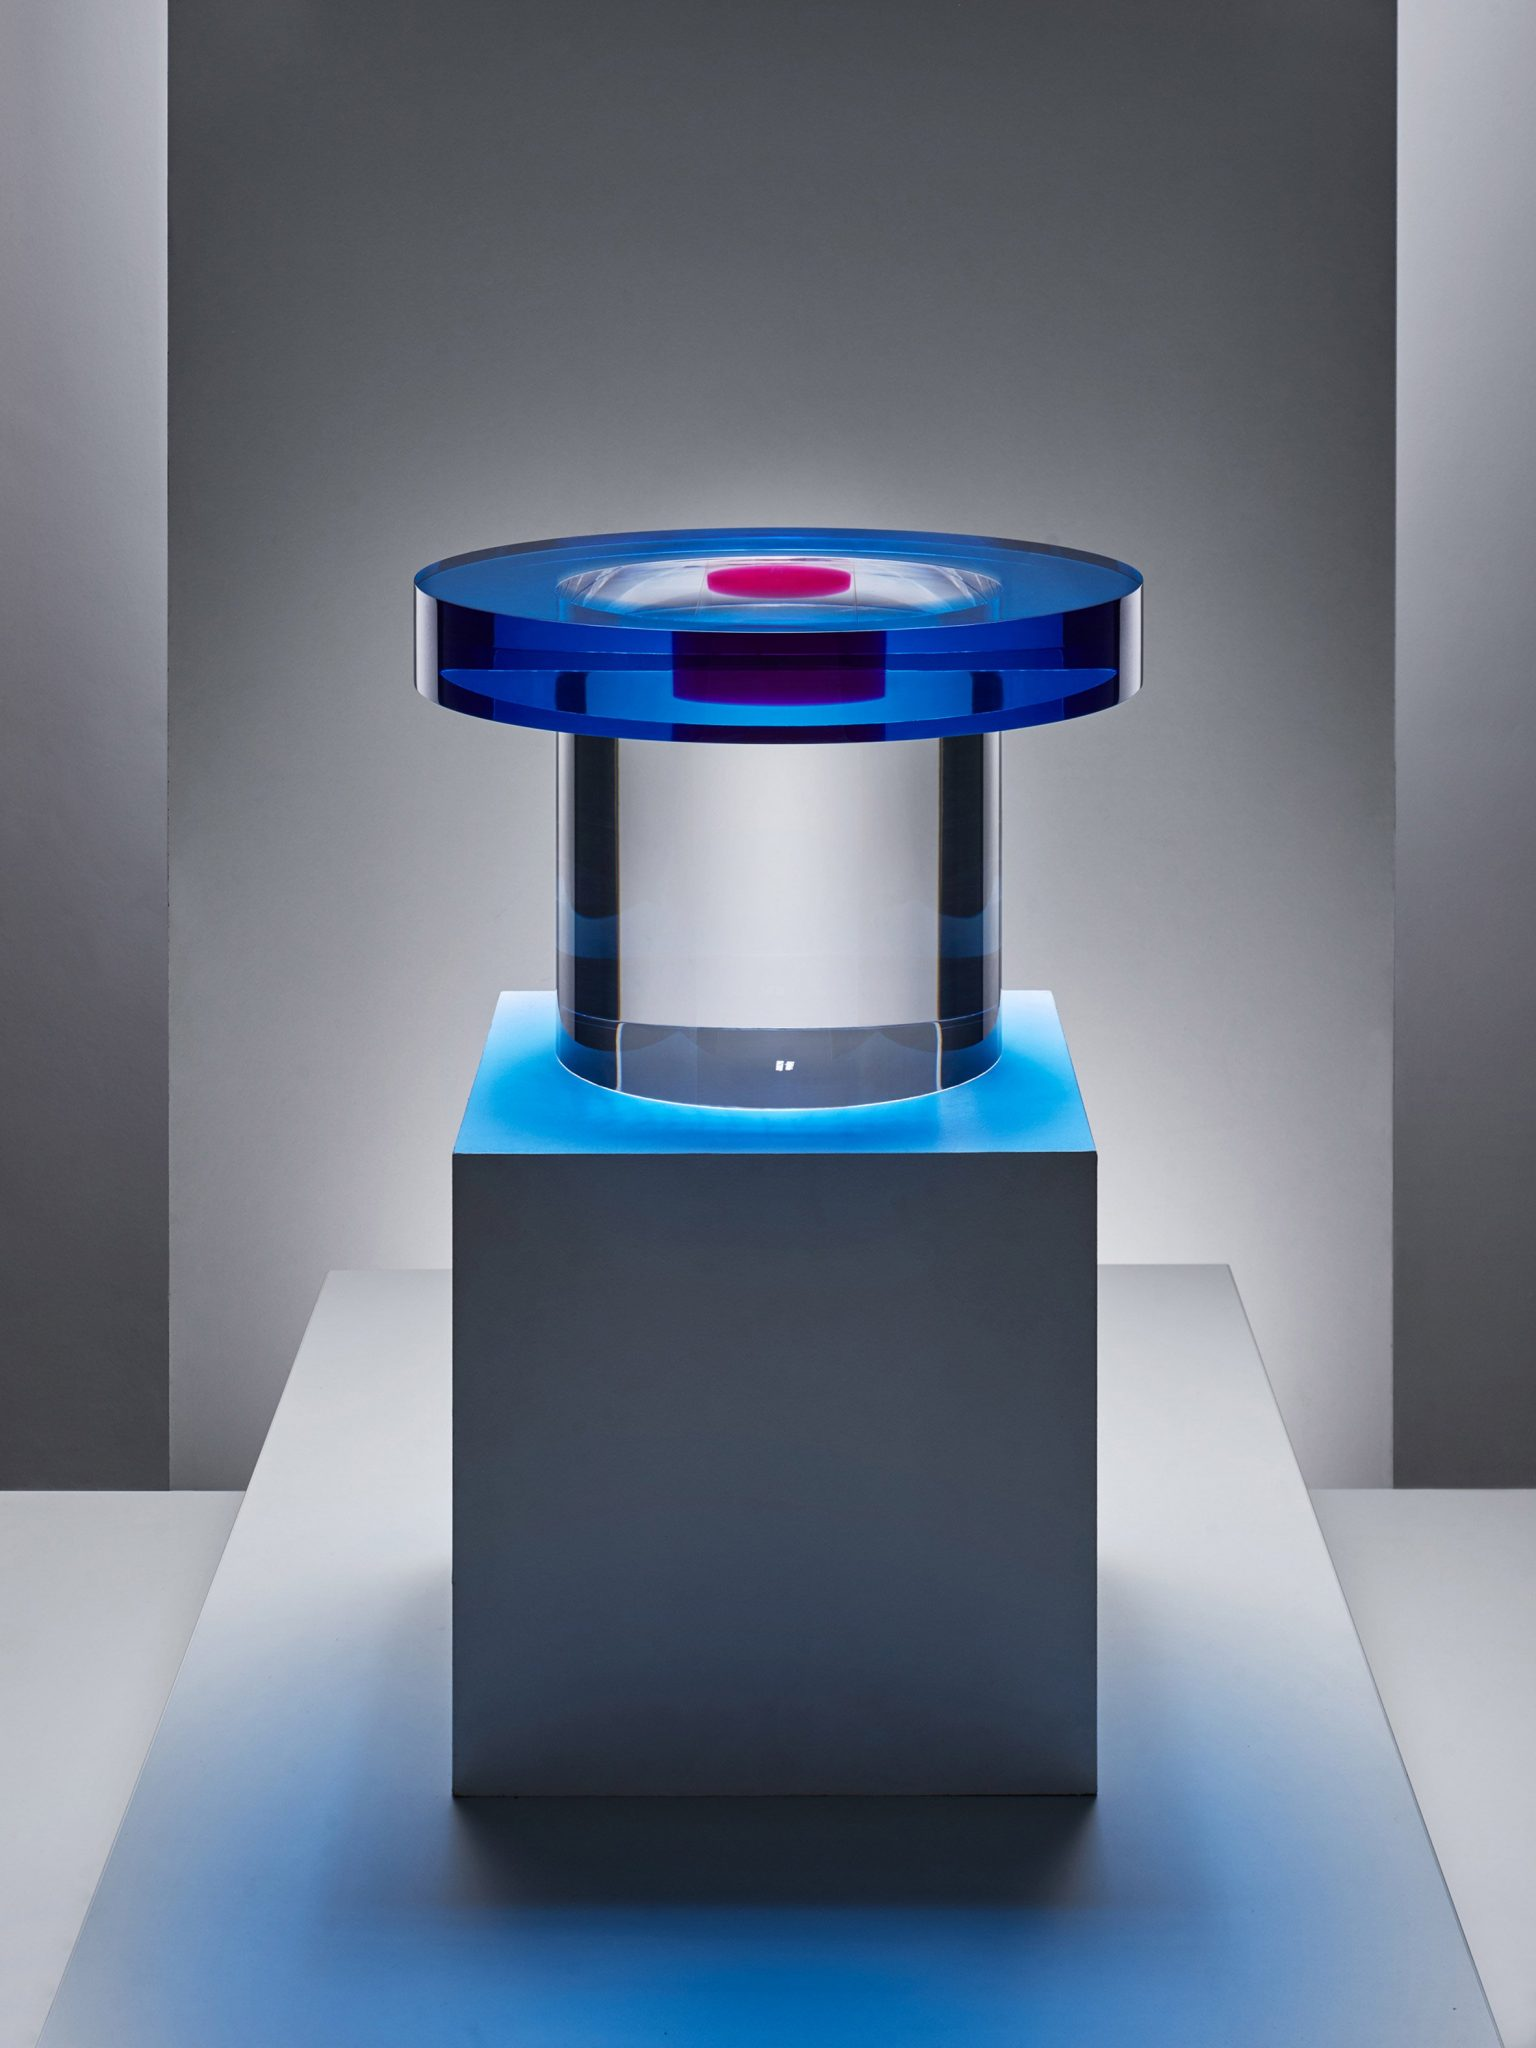 """Candy-coloured resin tables that """"challenge visual perception"""" block andy martin design furniture dezeen 2364 col 3"""